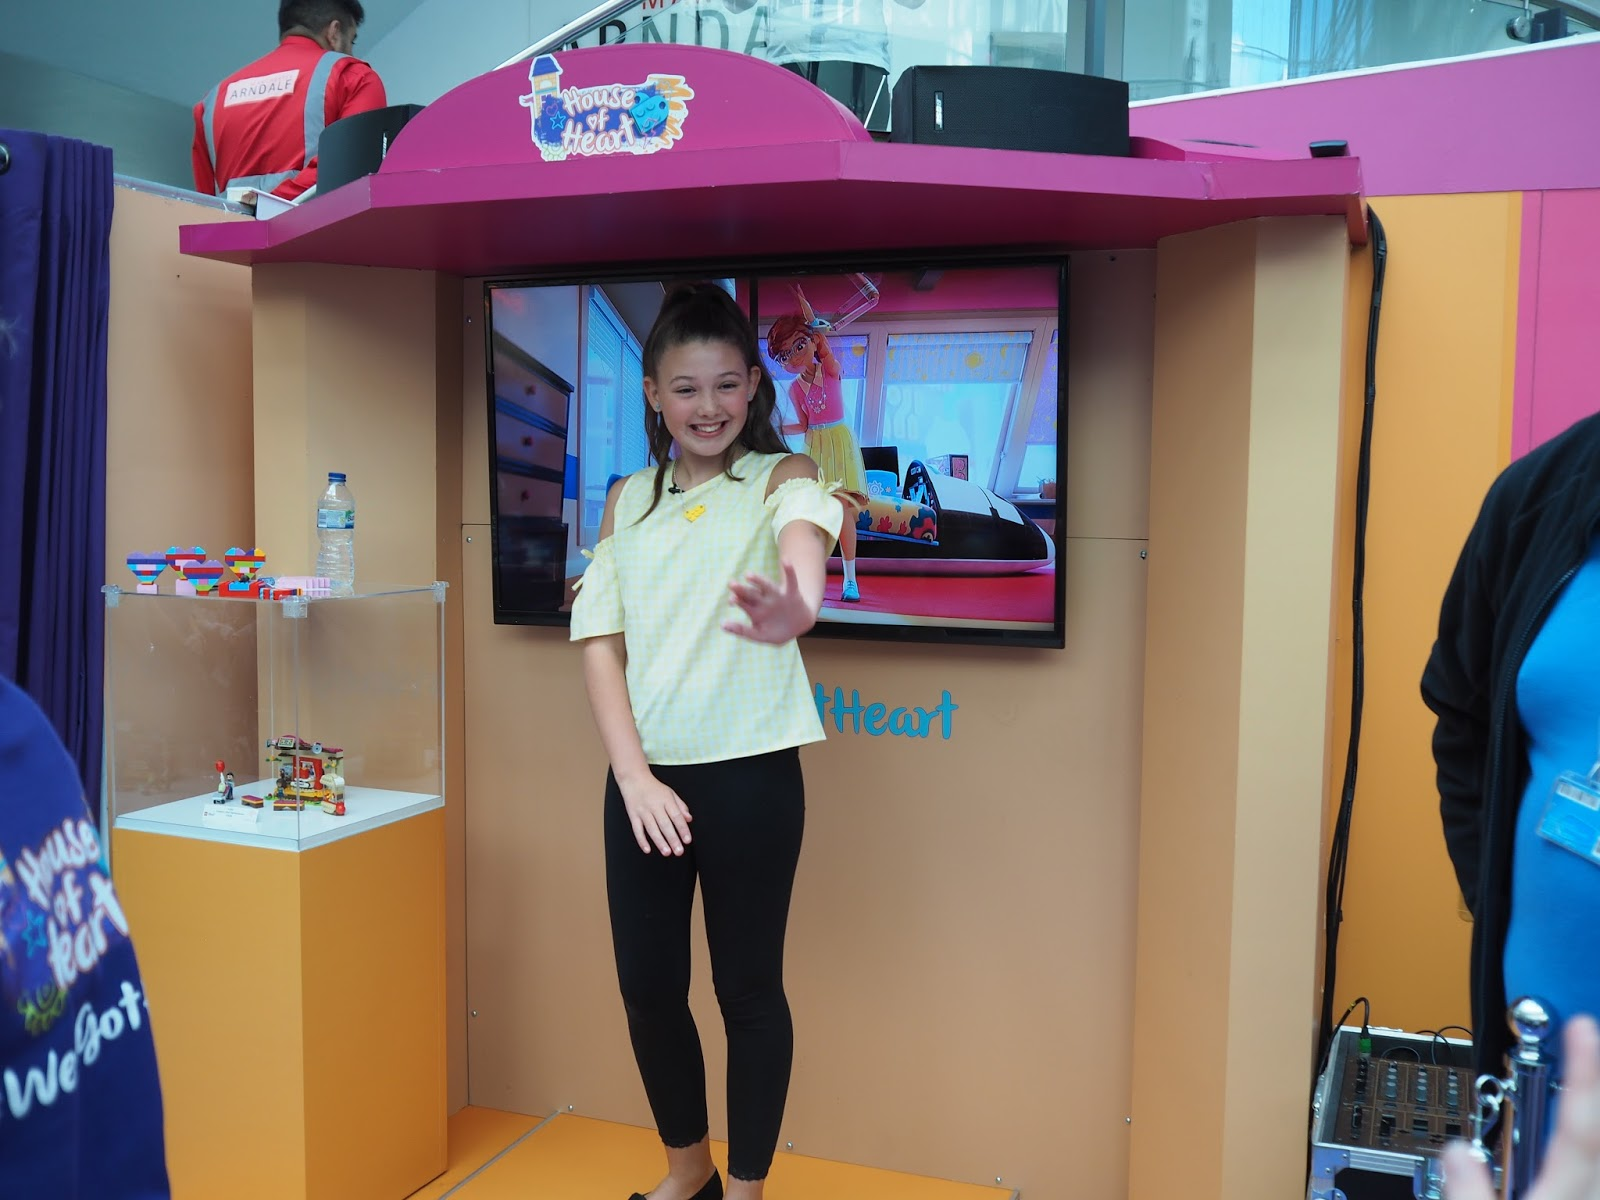 lego friends house of hearts tour manchester arndale ingham family sassybelle